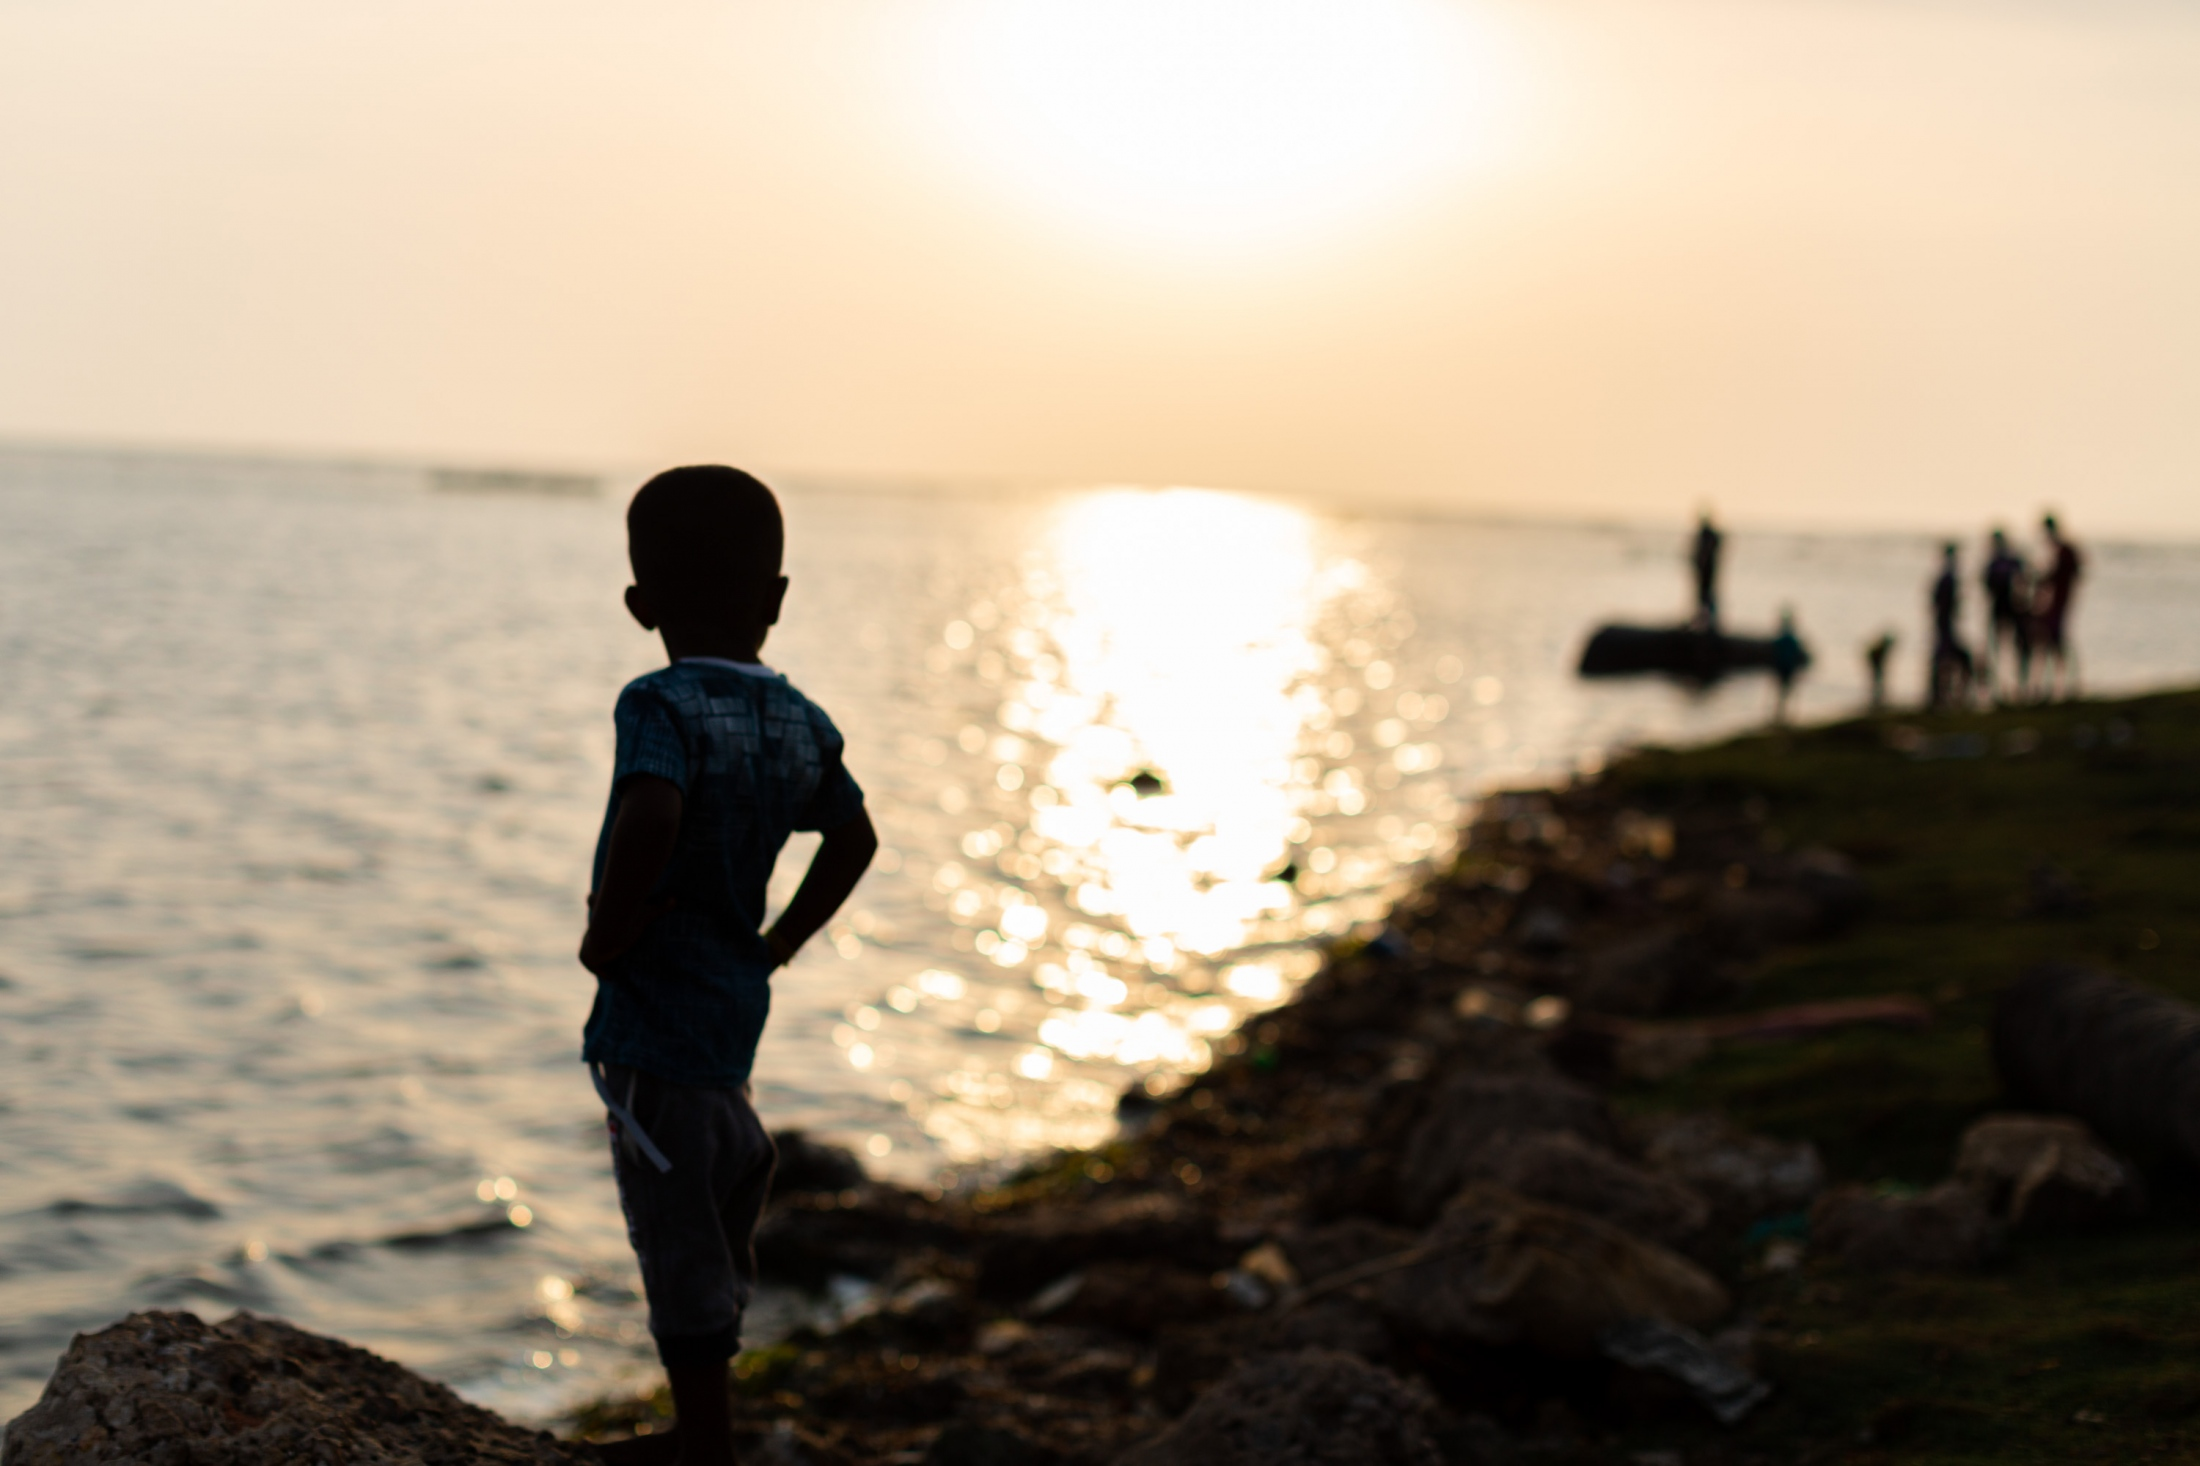 A young boy watches fishermen coming into the shore in Jaffna. (May, 2019)